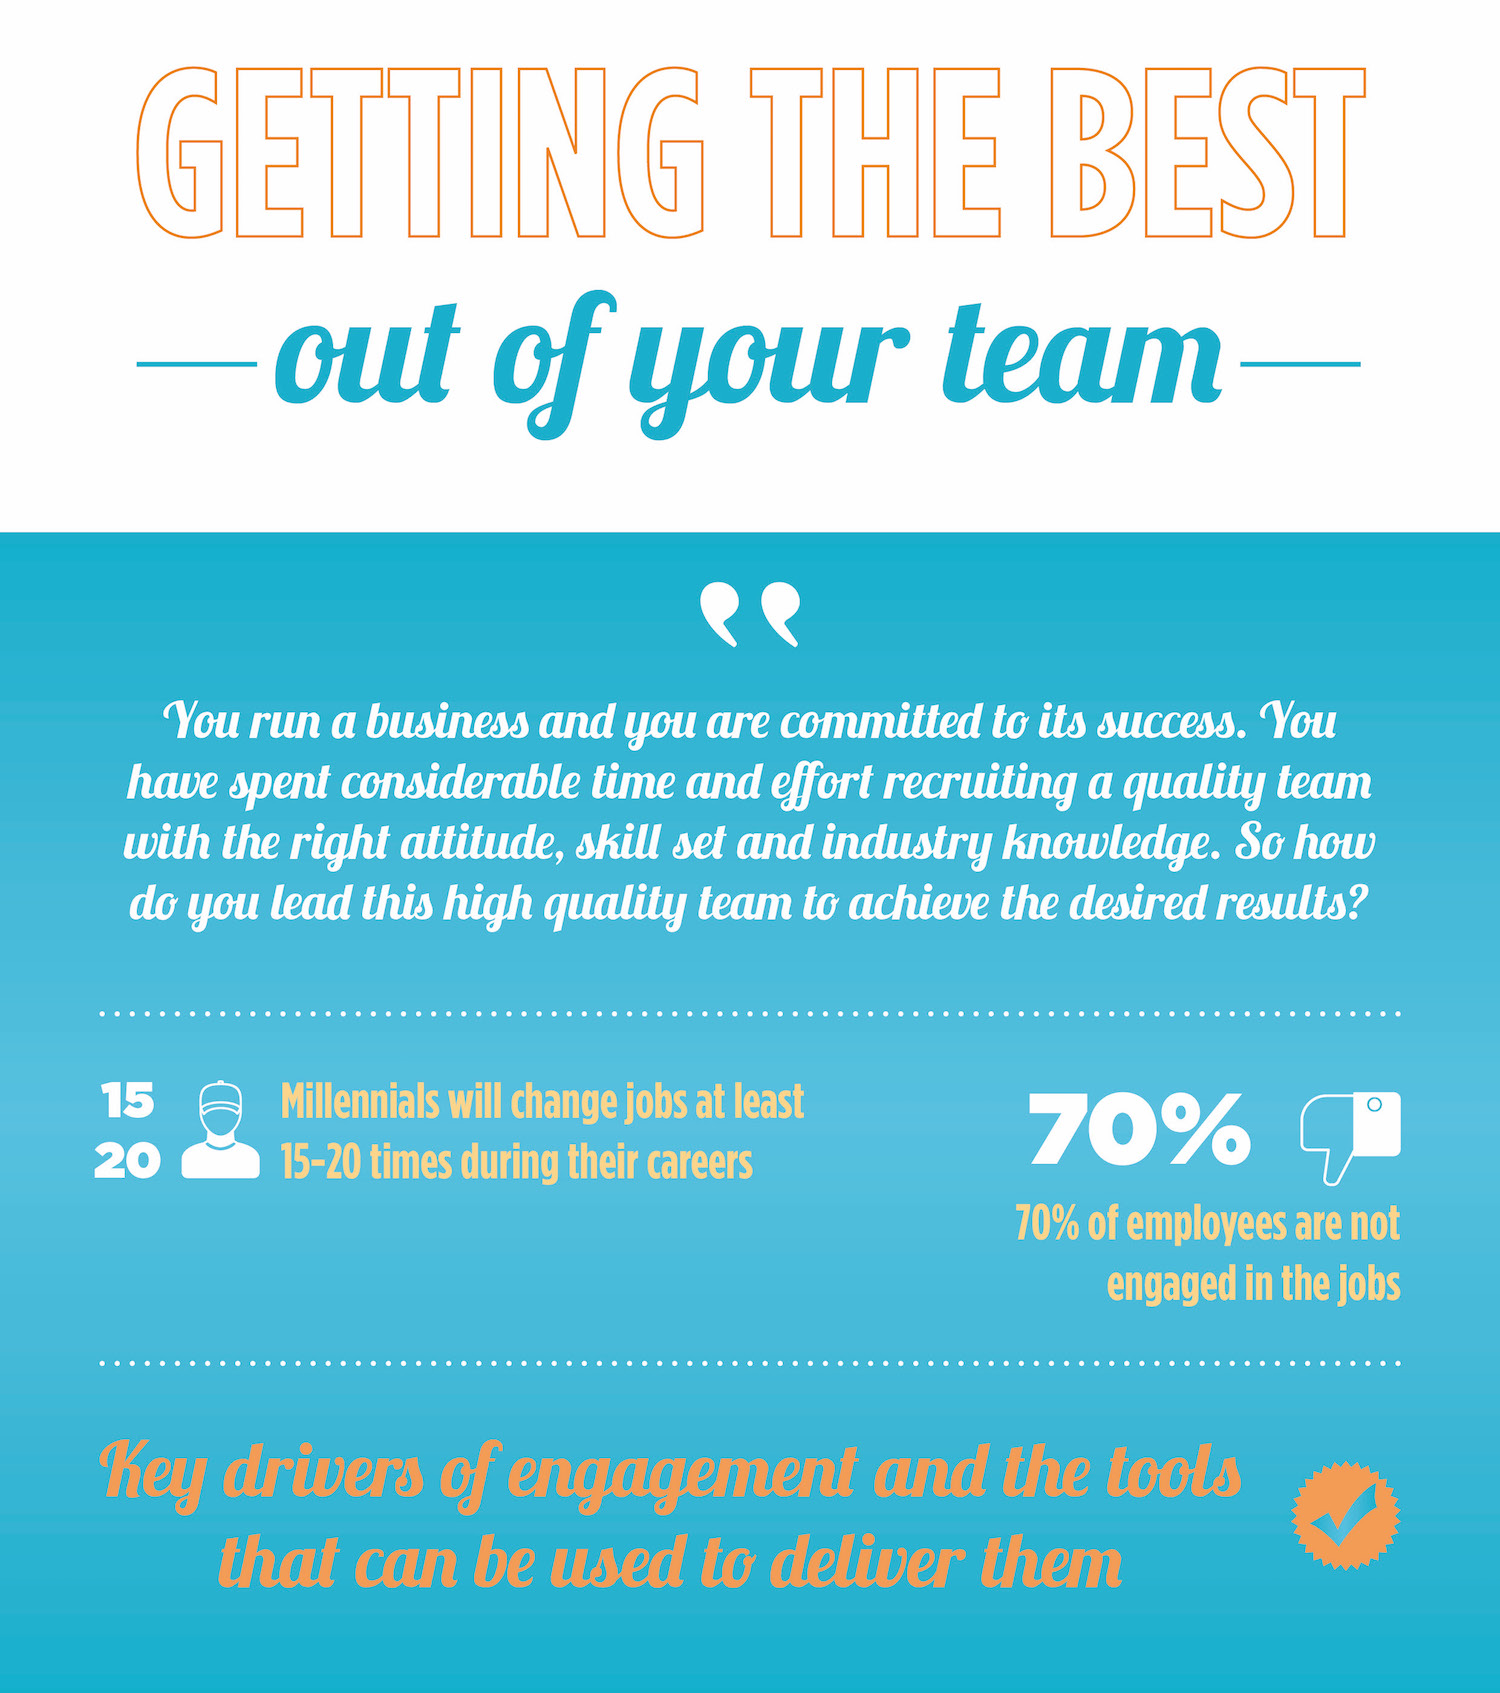 getting-the-best-out-of-your-team-Infographic-blog.jpg